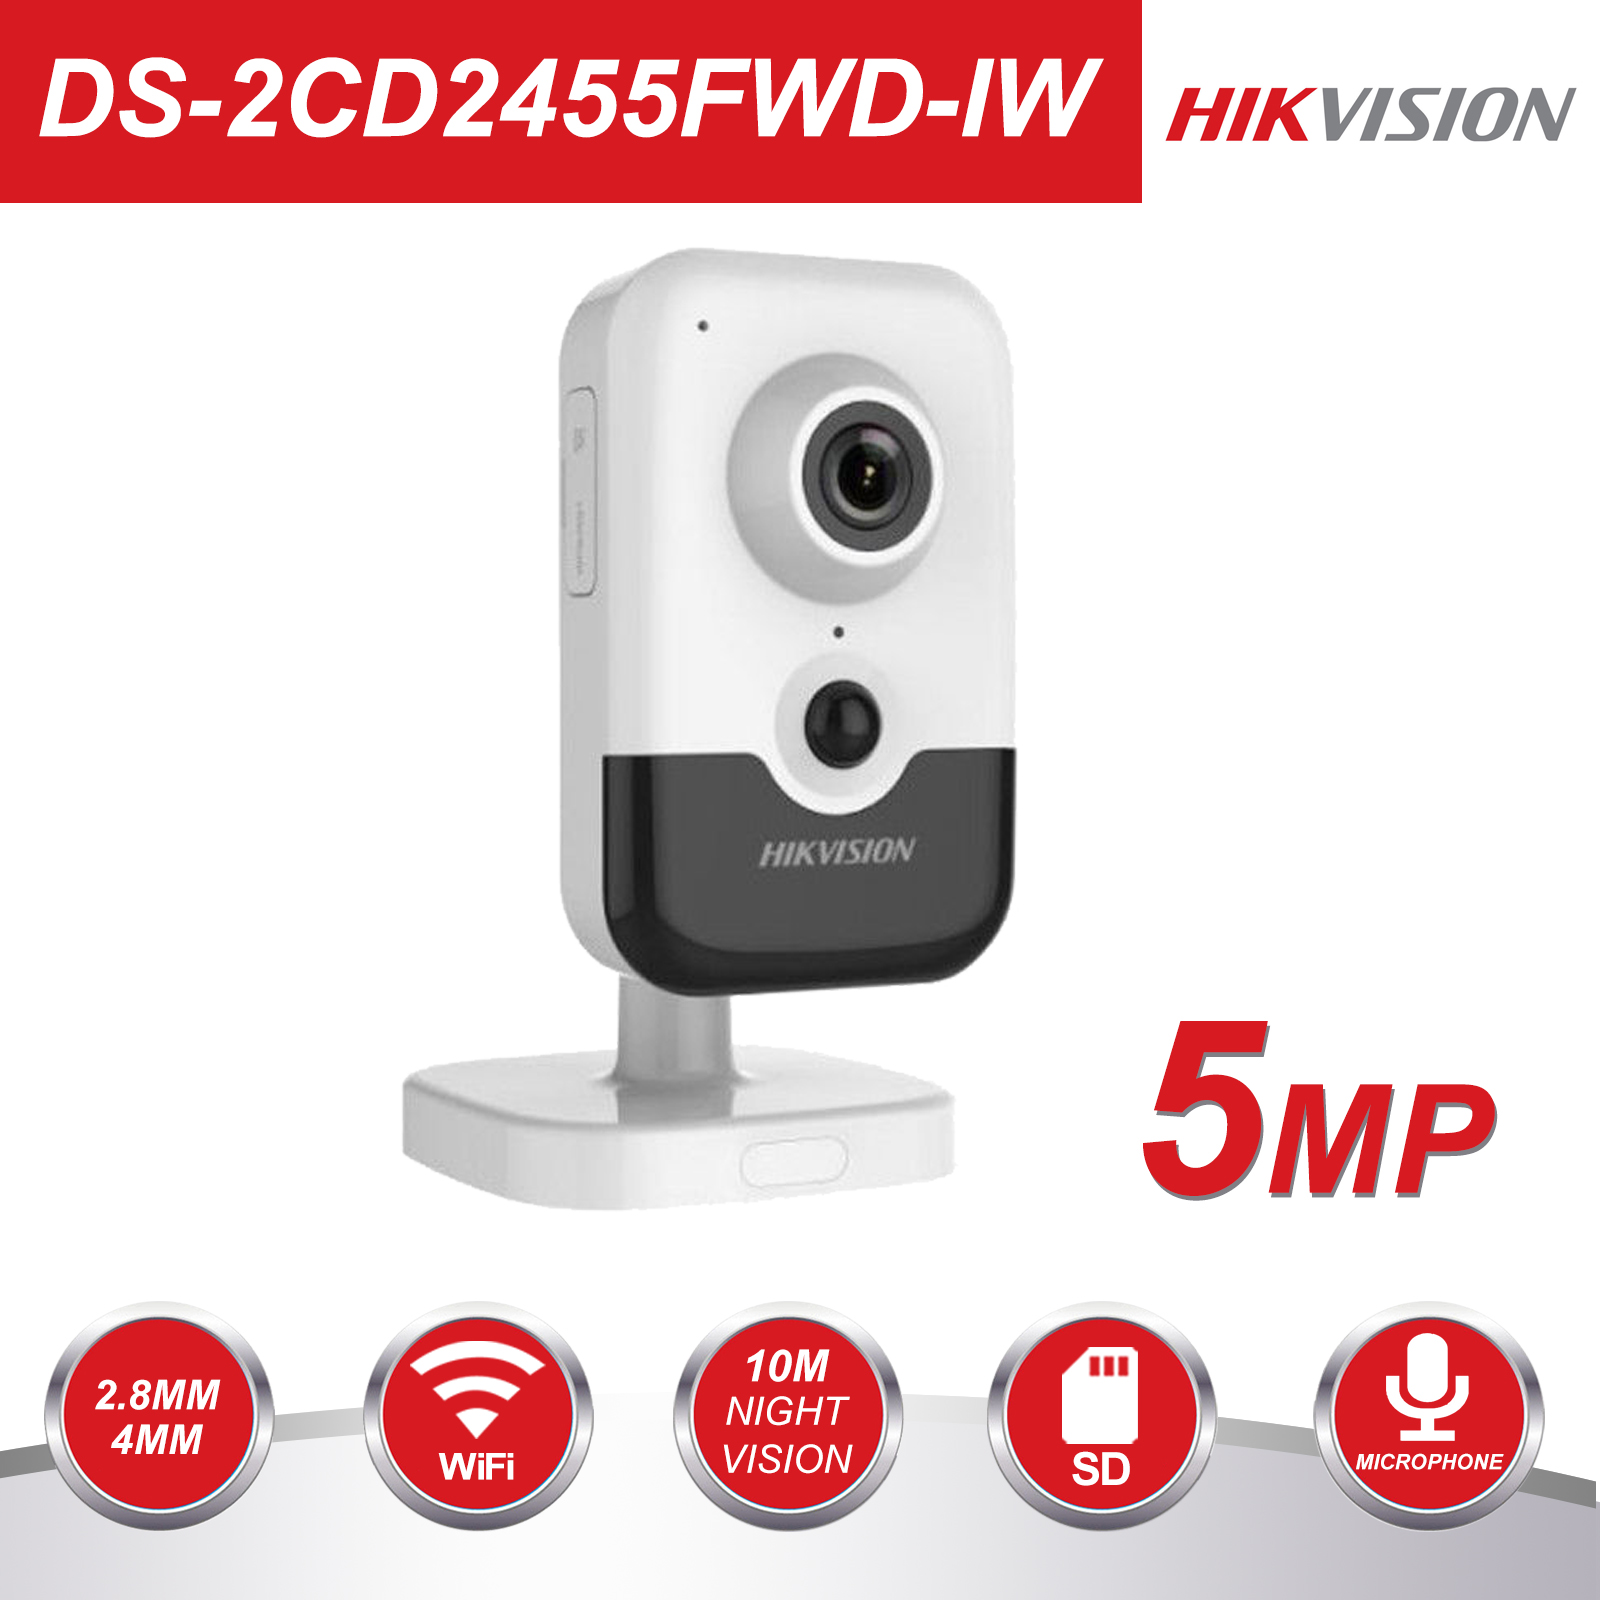 Hikvision Wireless IP Camera DS 2CD2455FWD IW 5MP Home Security Cube WiFi Camera Built in microphone